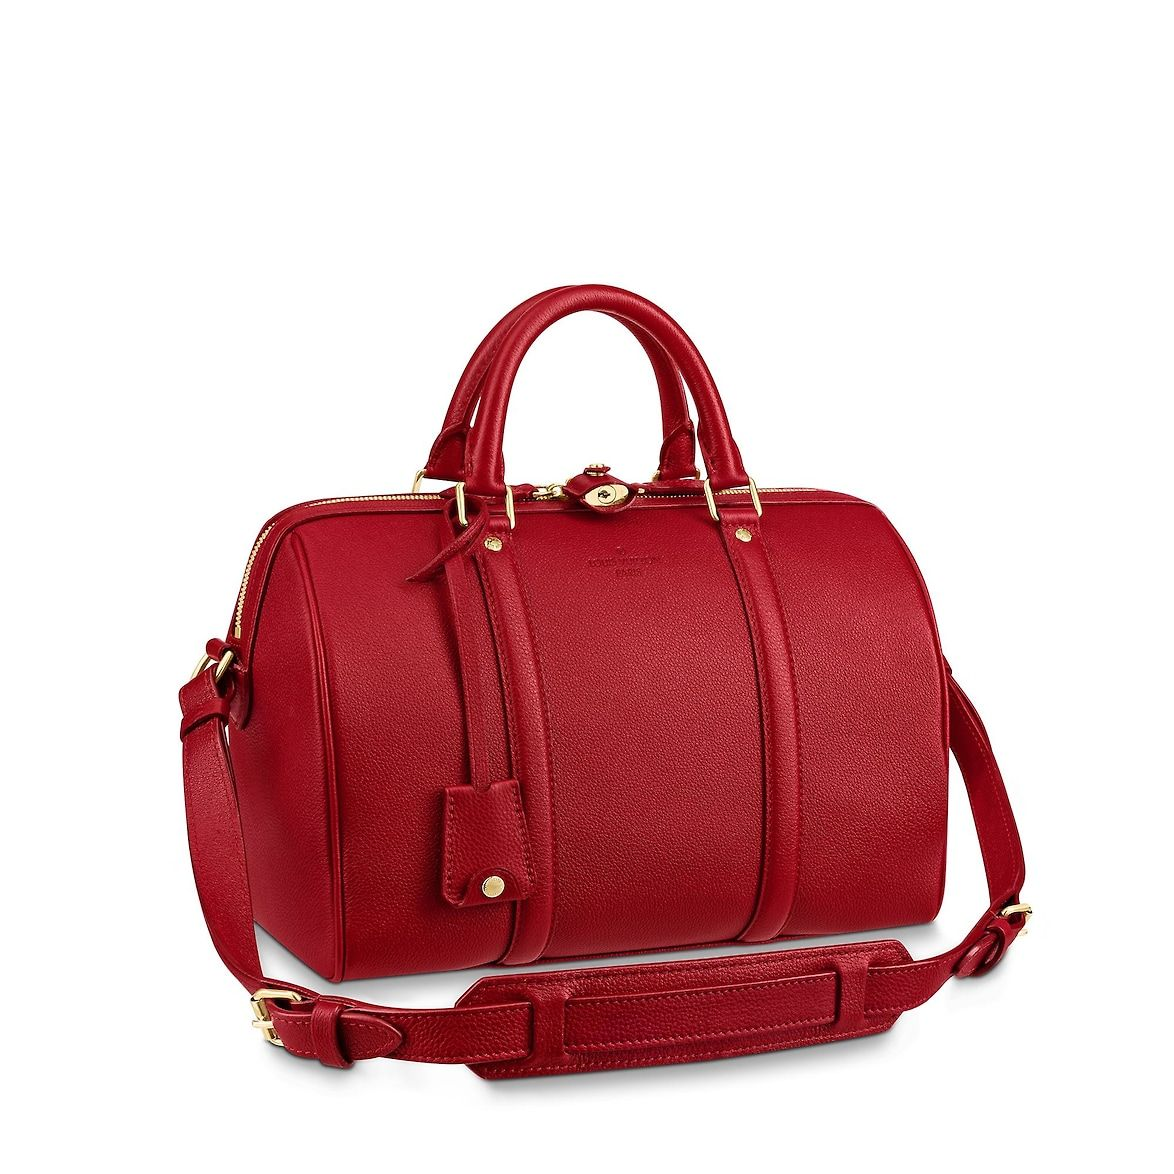 9624f1c9fe45 View 1 - Other leathers HANDBAGS Top Handles SC Bag PM